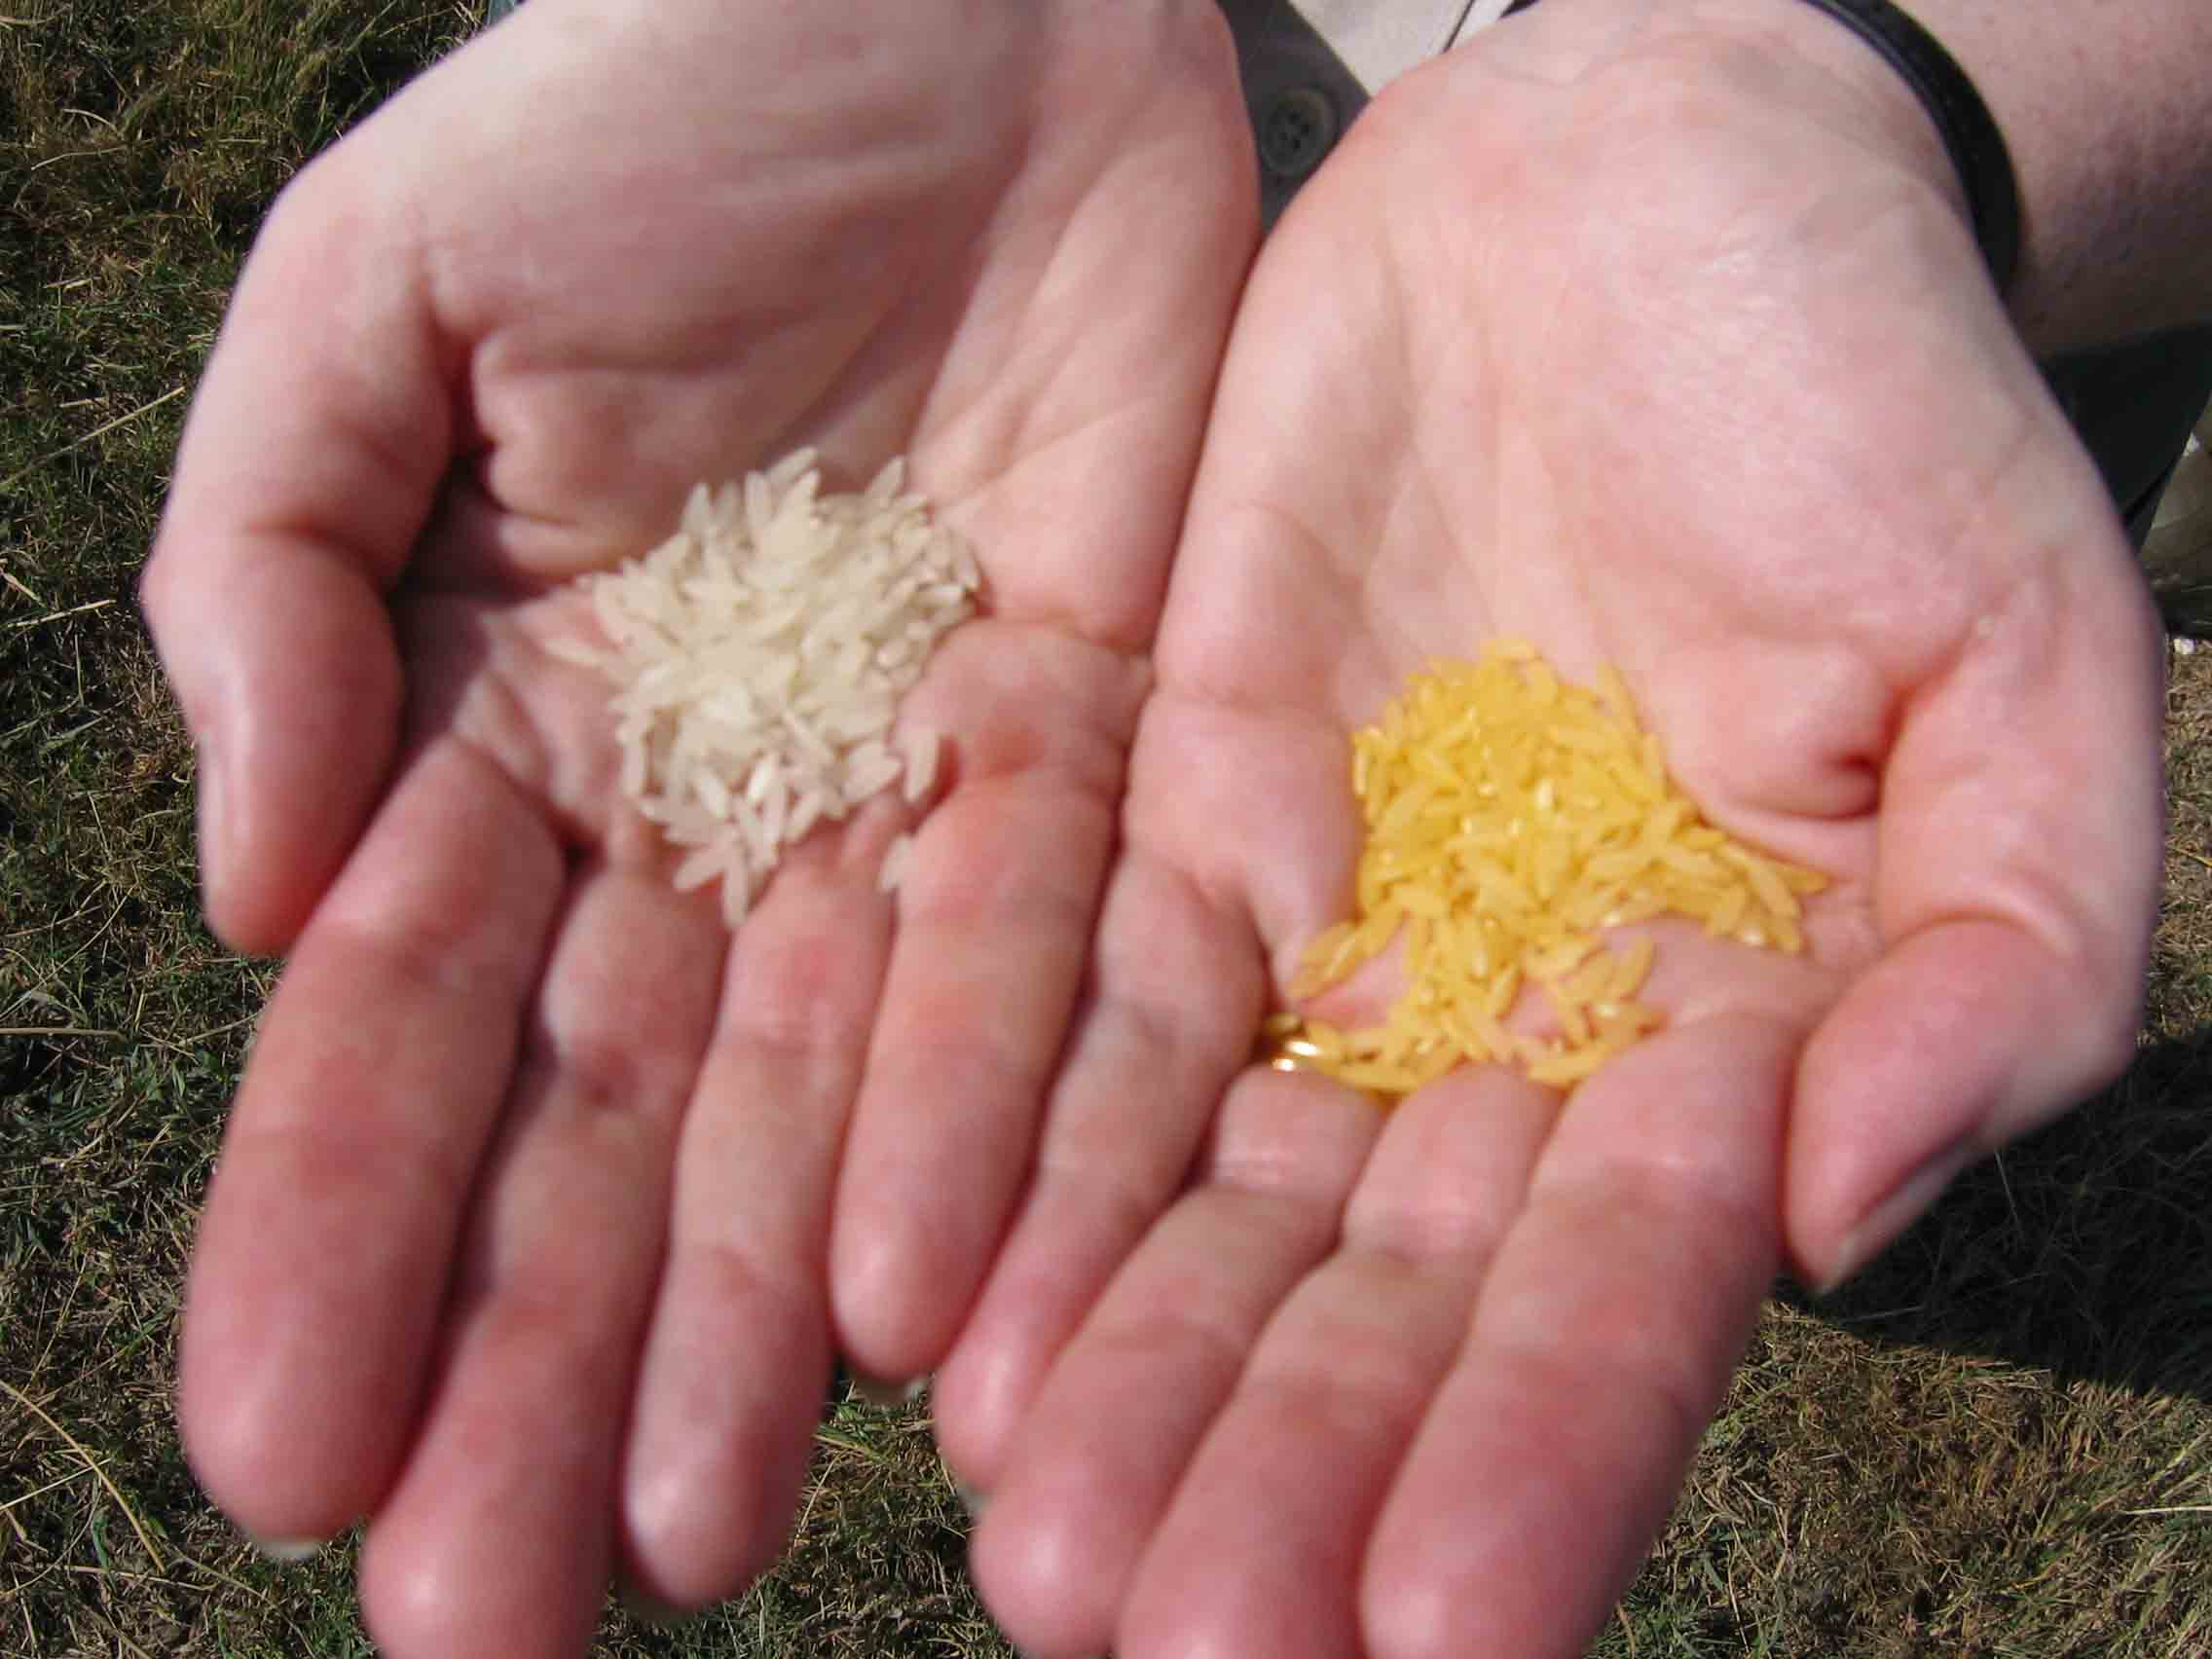 Golden Rice within reach